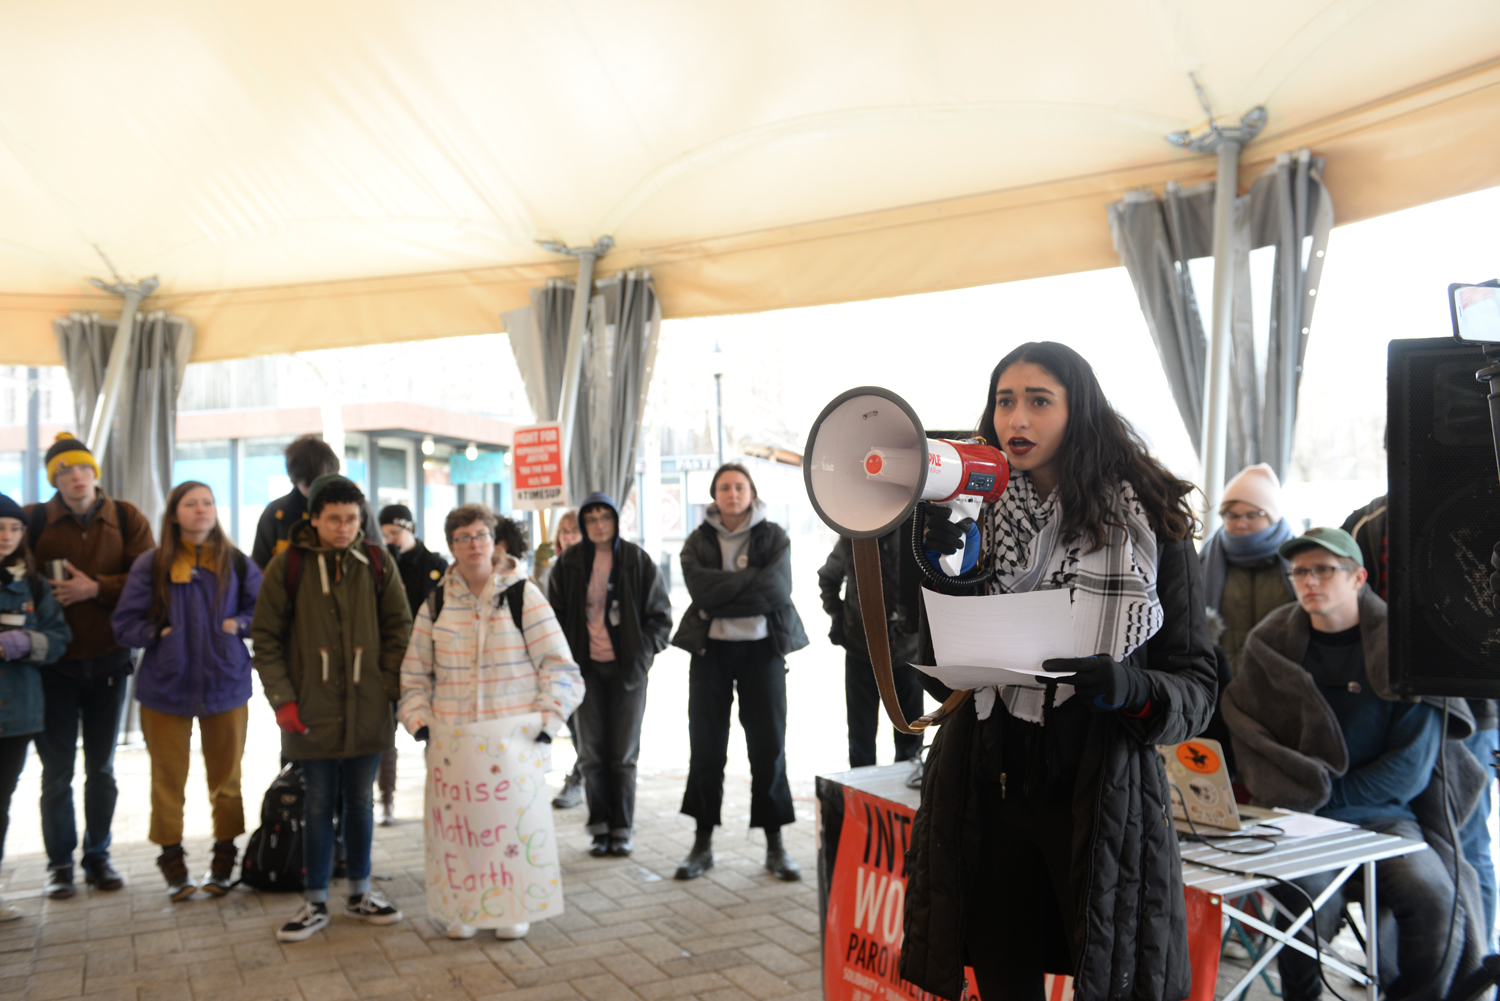 About 100 people gathered in Schenley Plaza to demand reproductive justice, environmental justice and an end to gender violence at Thursday afternoon's student walkout.